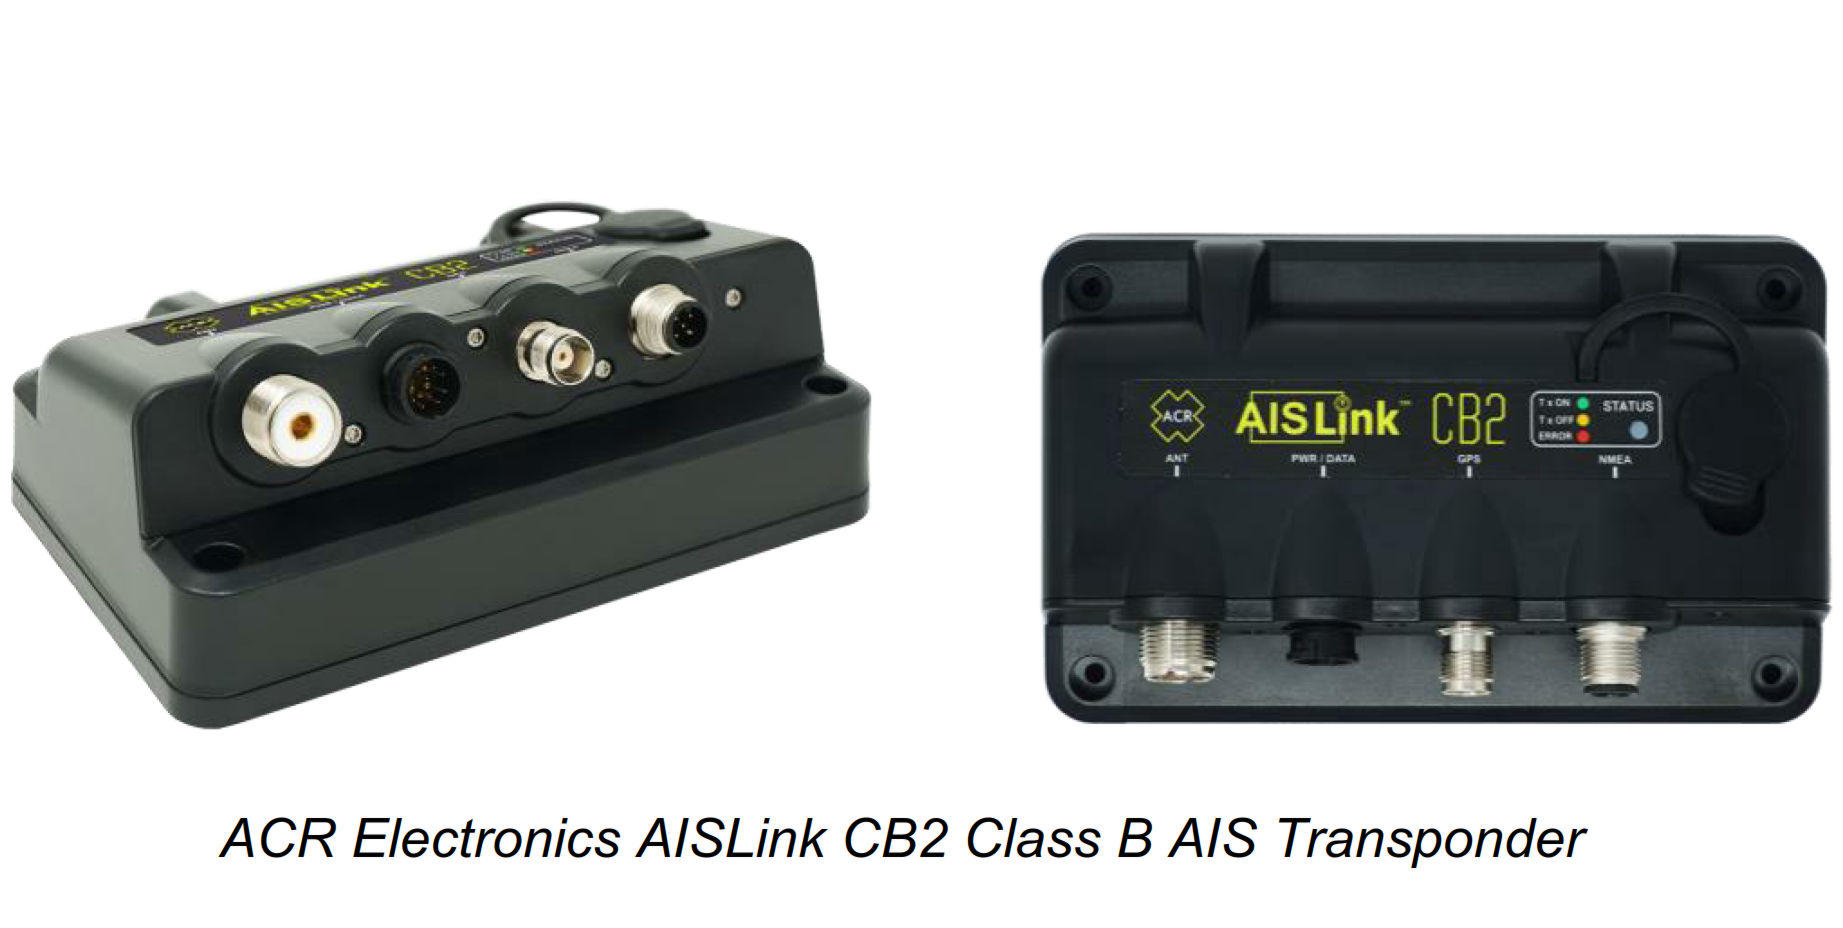 ACR Electronics Introduces AISLink CB2 Class B AIS